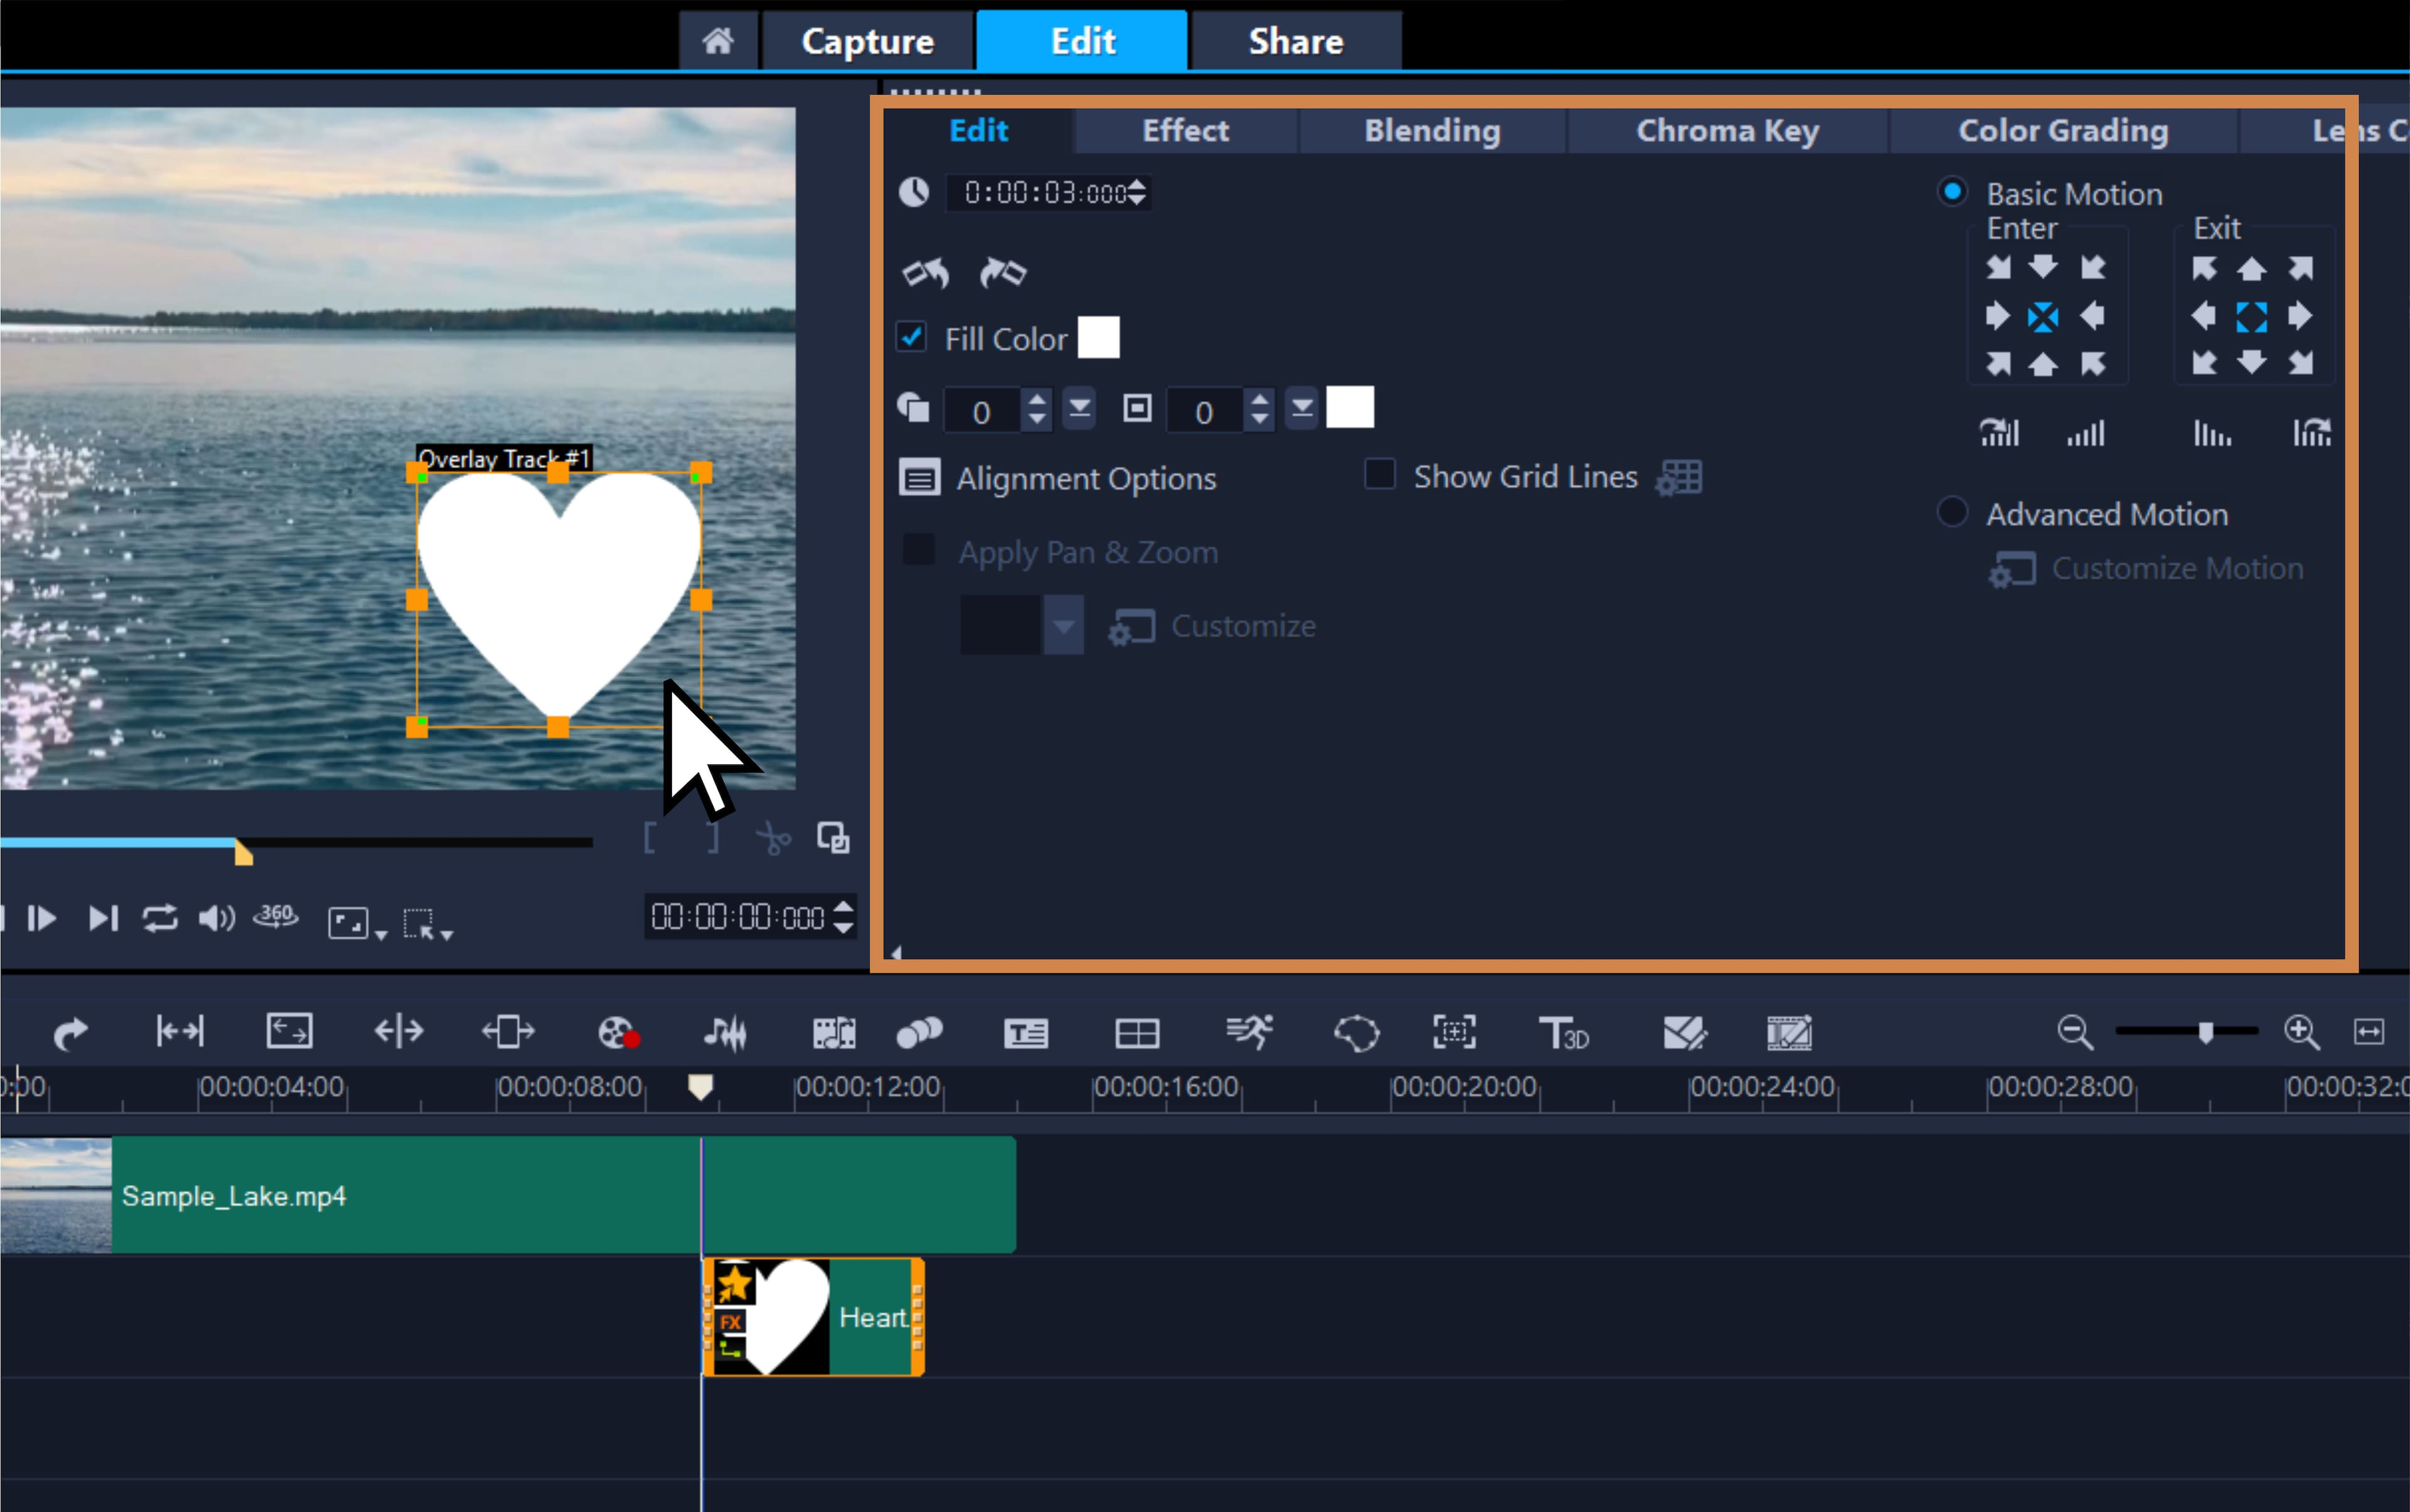 Customize the video overlay